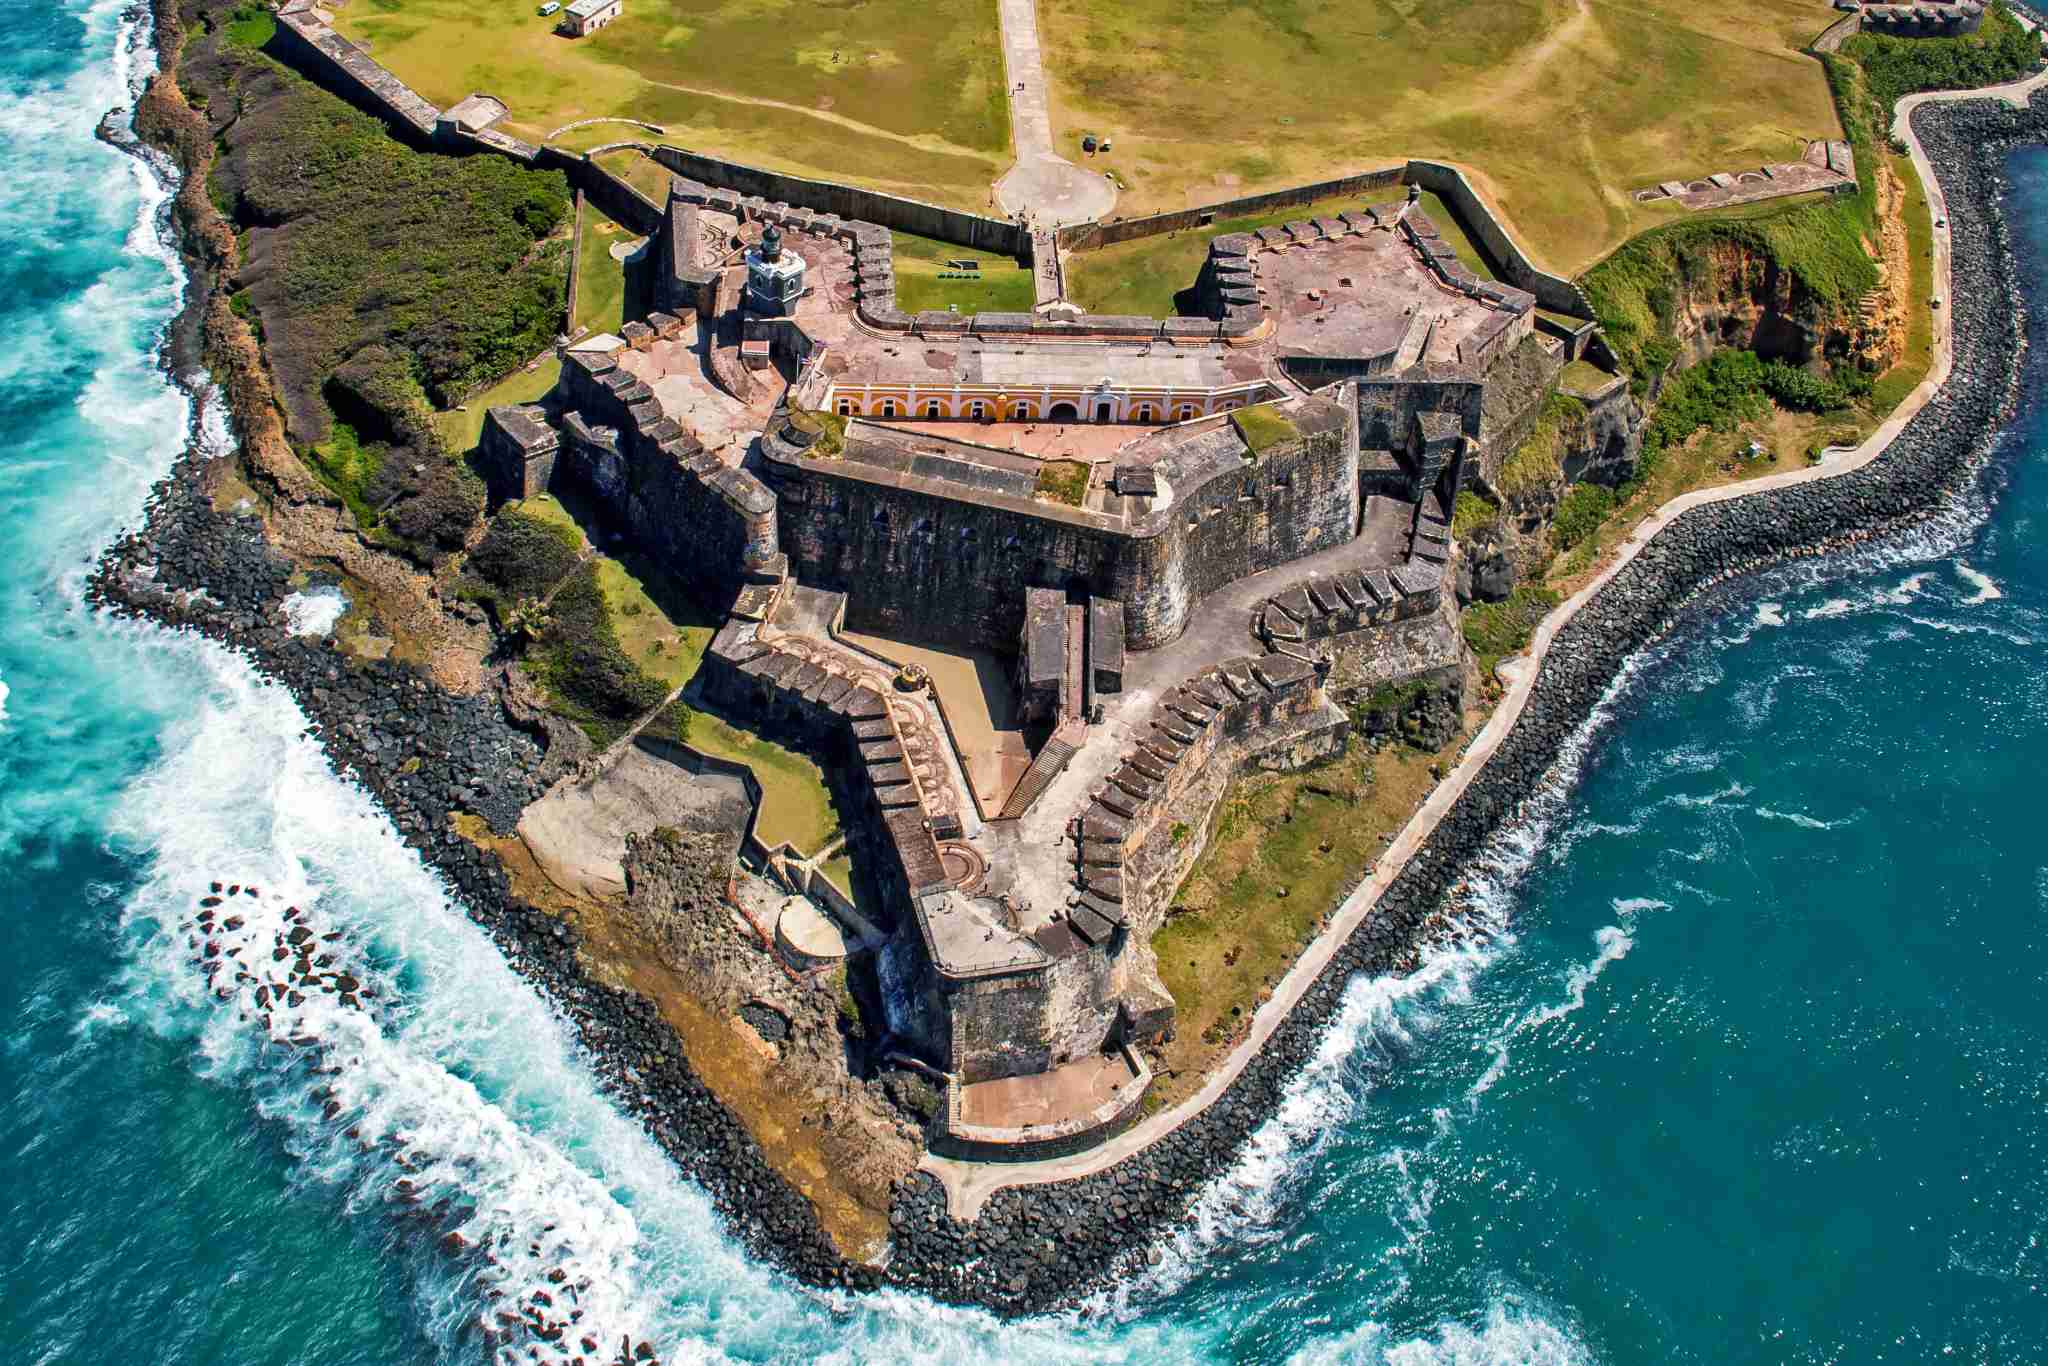 Pay a visit to Castillo San Felipe del Morro in San Juan, Puerto Rico. (Photo by felixairphoto / Getty Images)